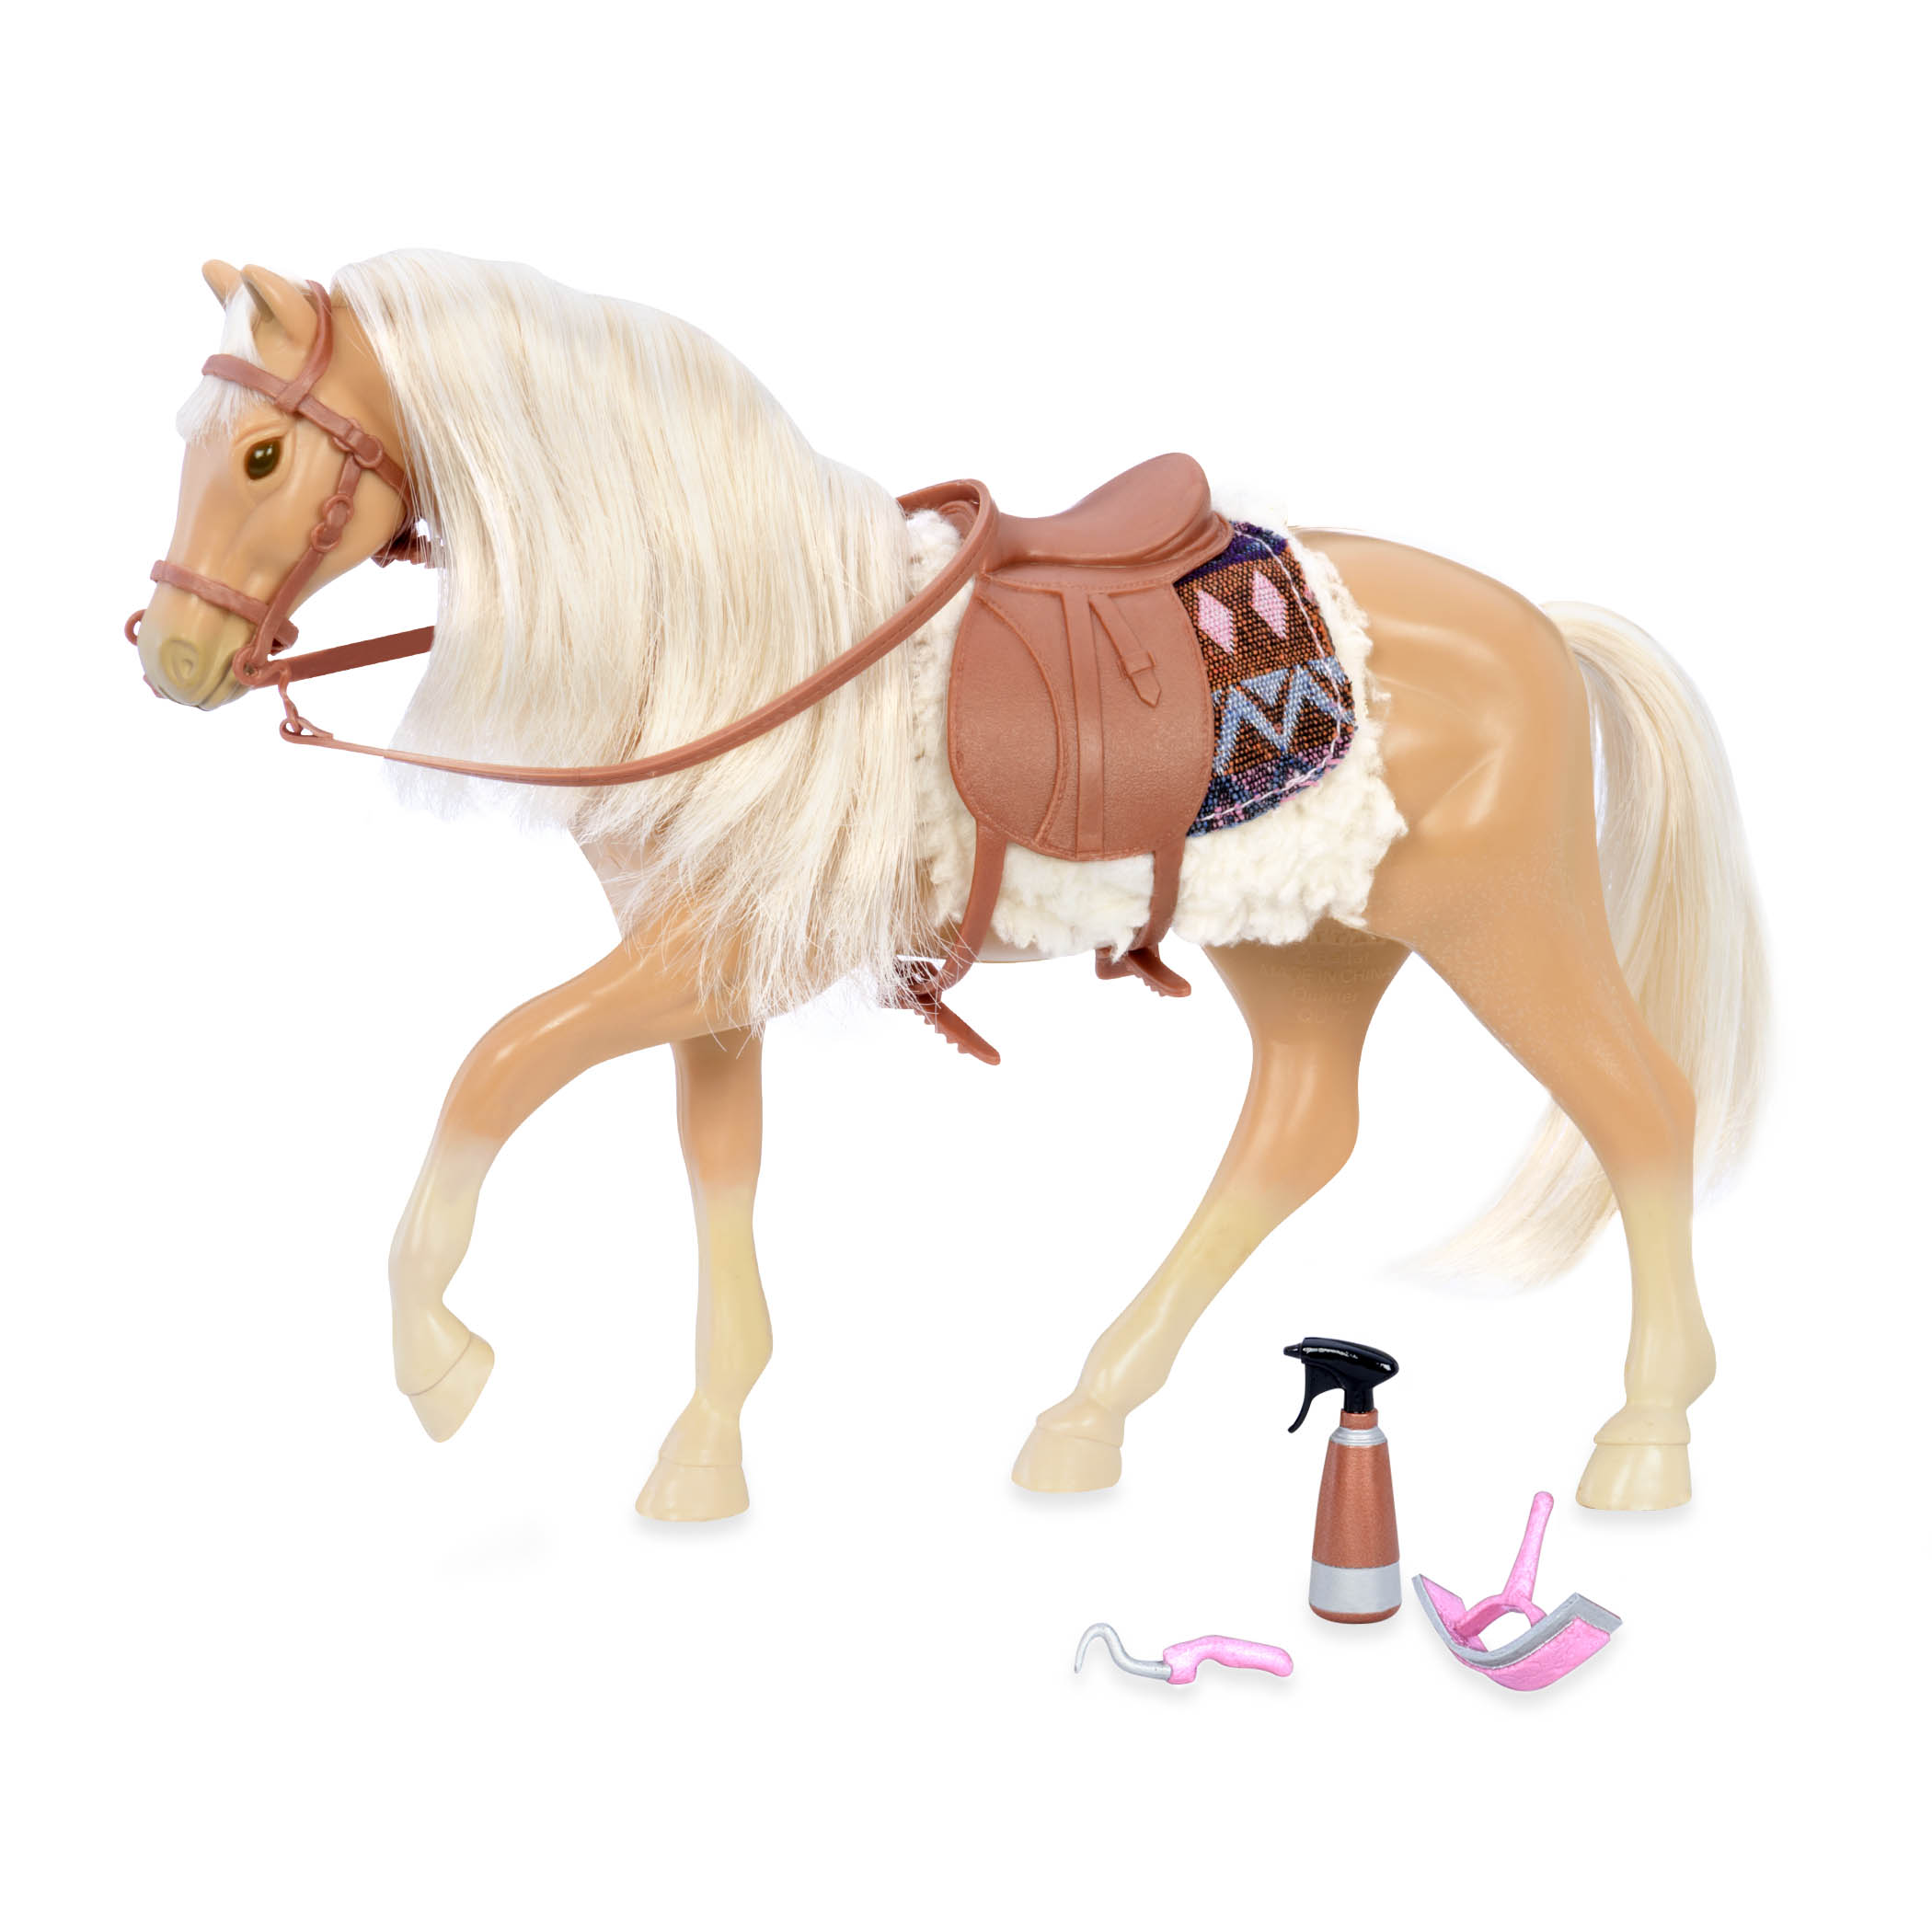 American Quarter Horse | Horse for 6-inch Dolls | Lori